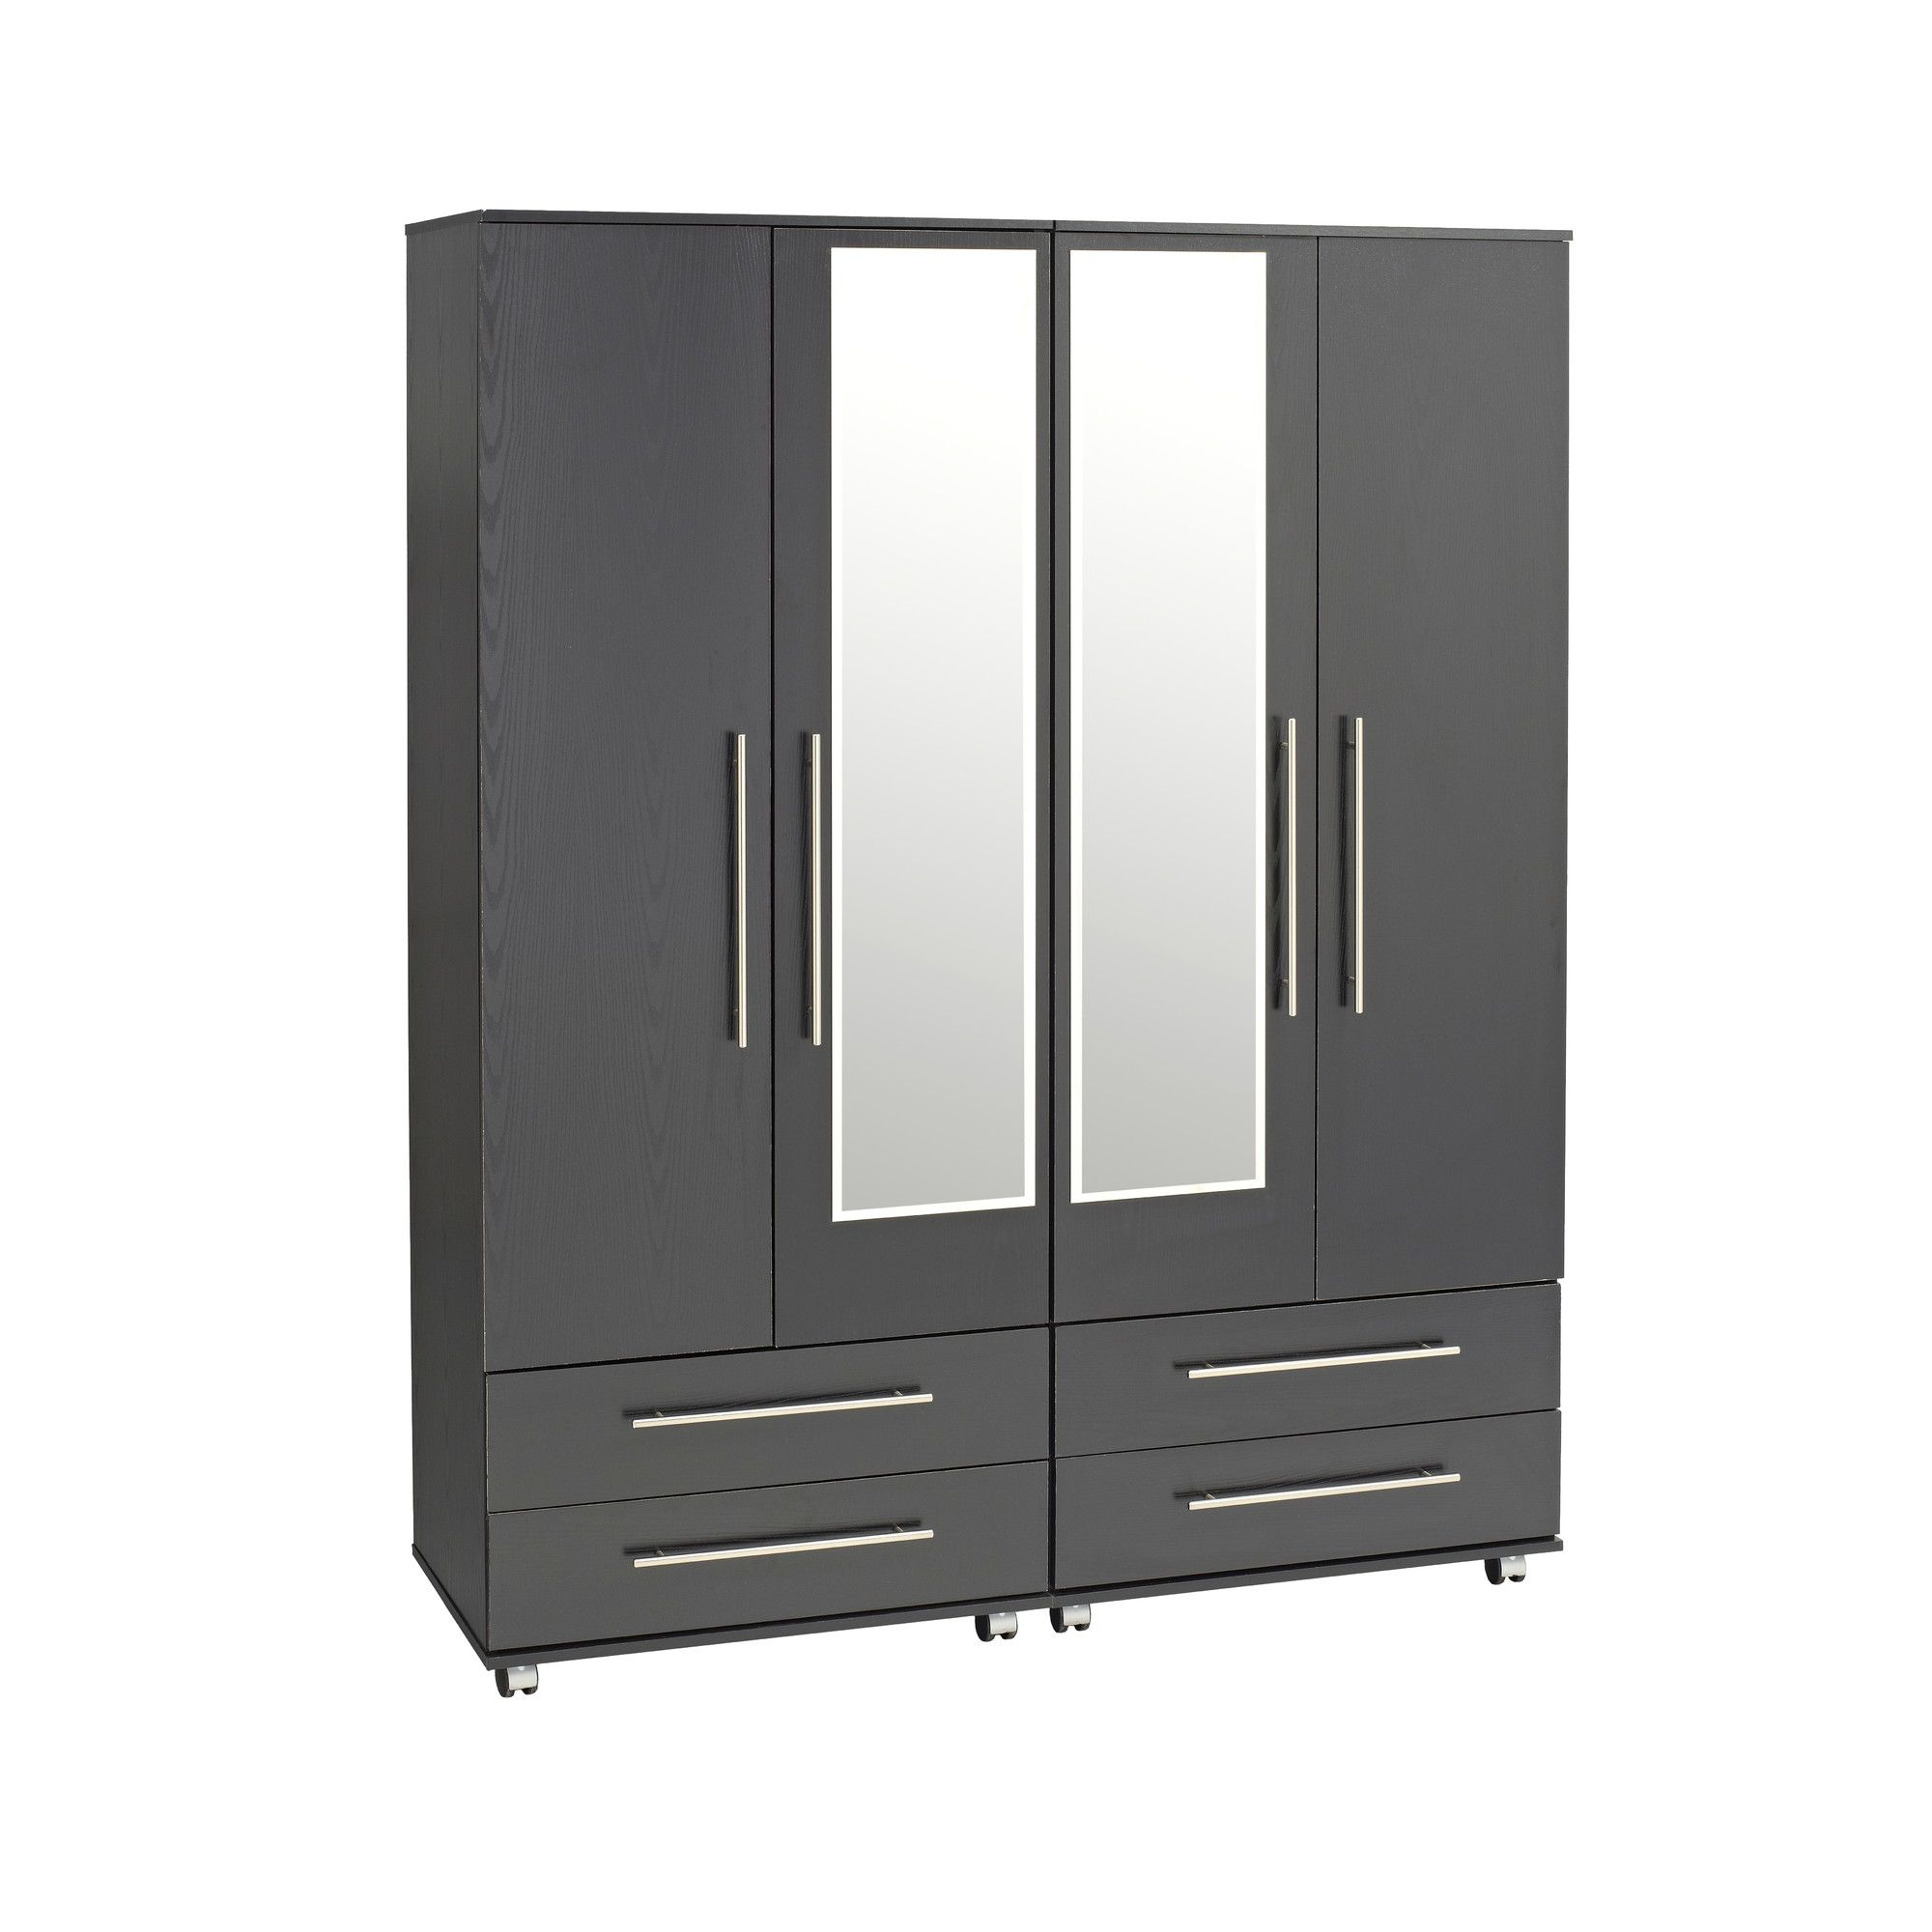 Ideal Furniture Bobby 4 Door Wardrobe - Black at Tescos Direct